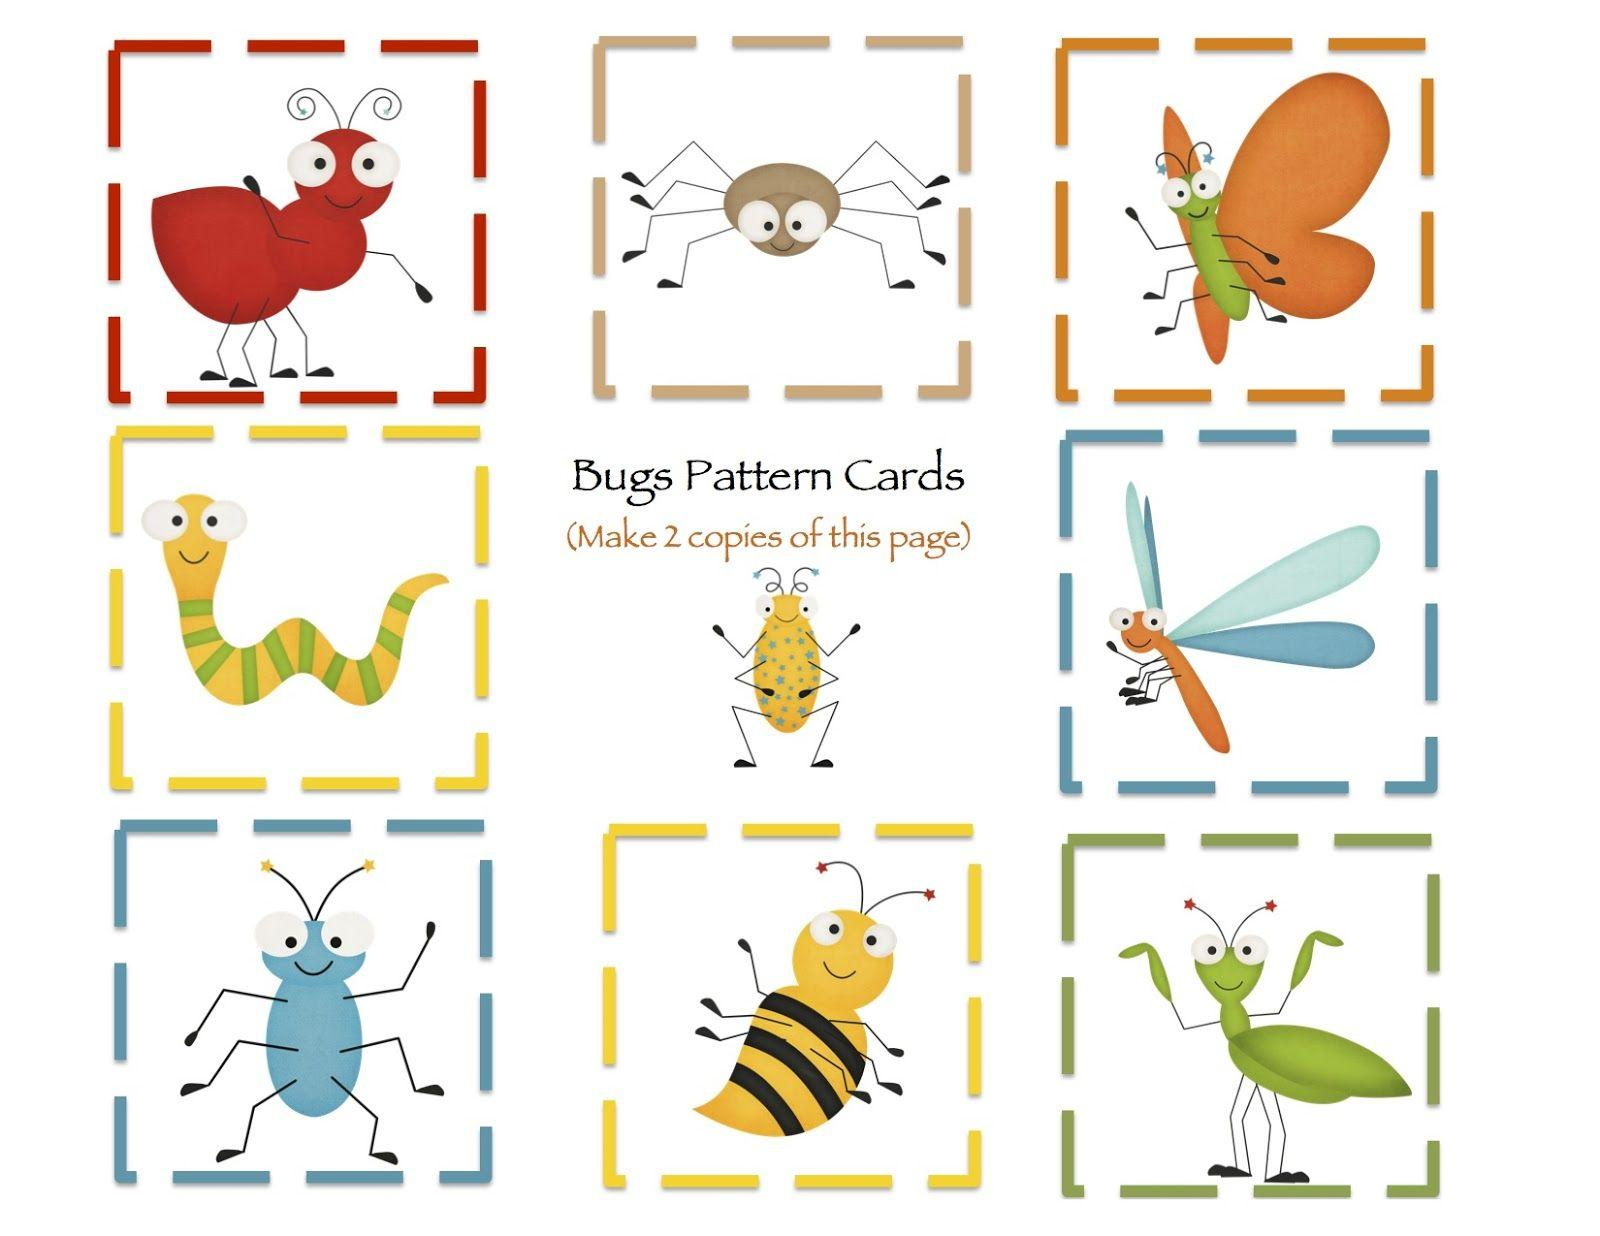 Worksheet On Insects For Preschool